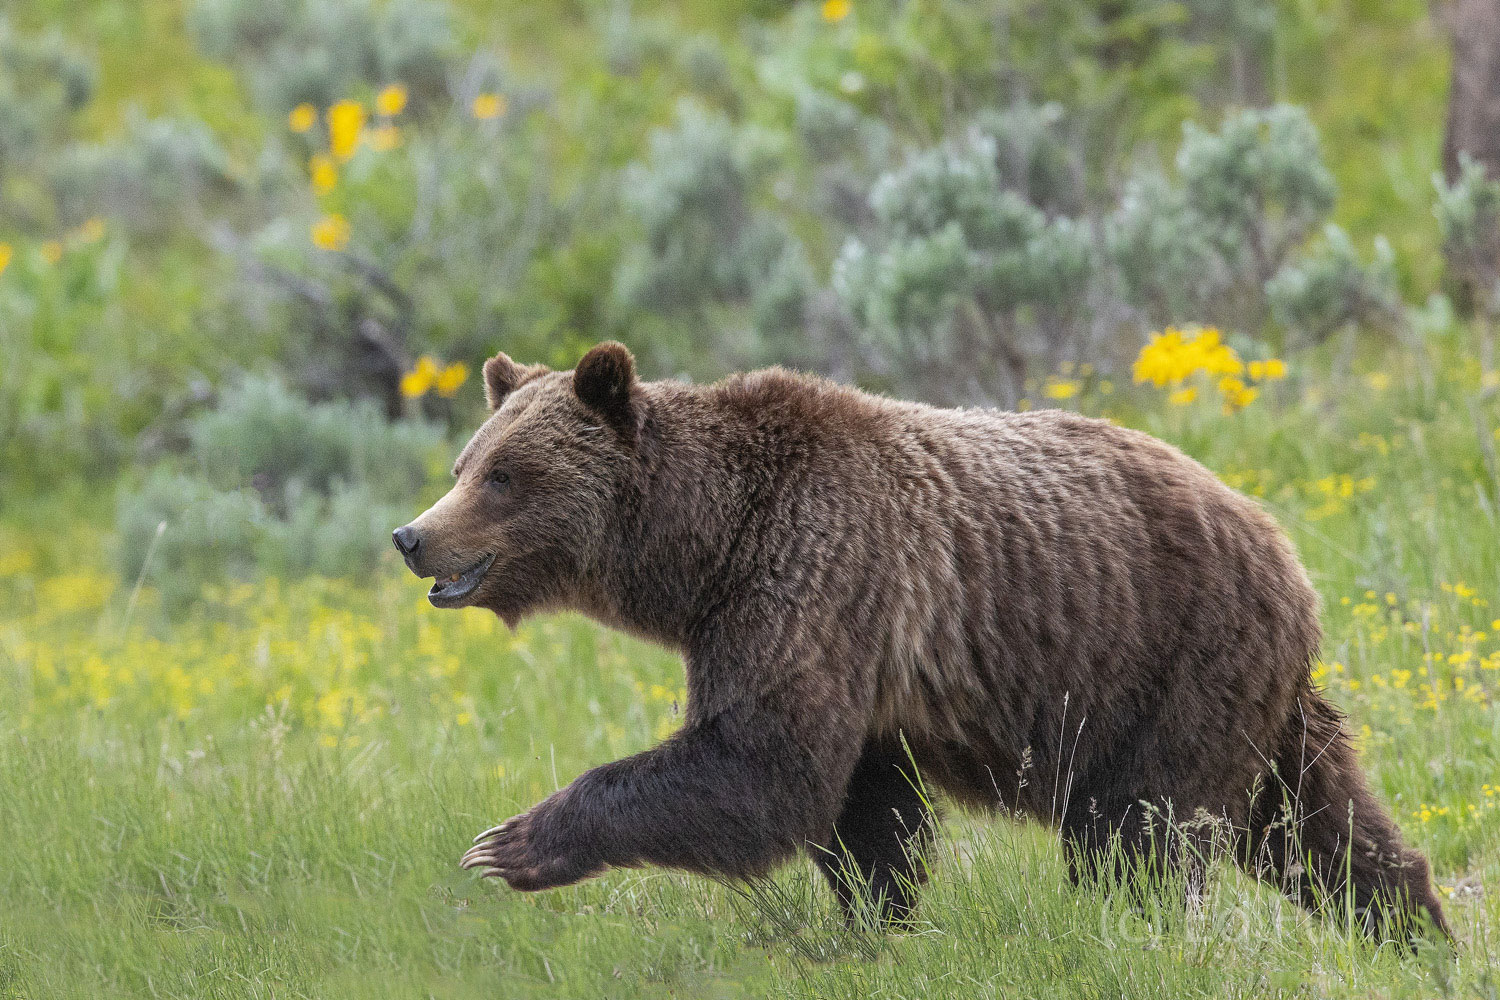 Grizzly 399, now some 24 years old and the grand matriarch of the Grand Tetons, is undoubtedly the most famous grizzly bear in...